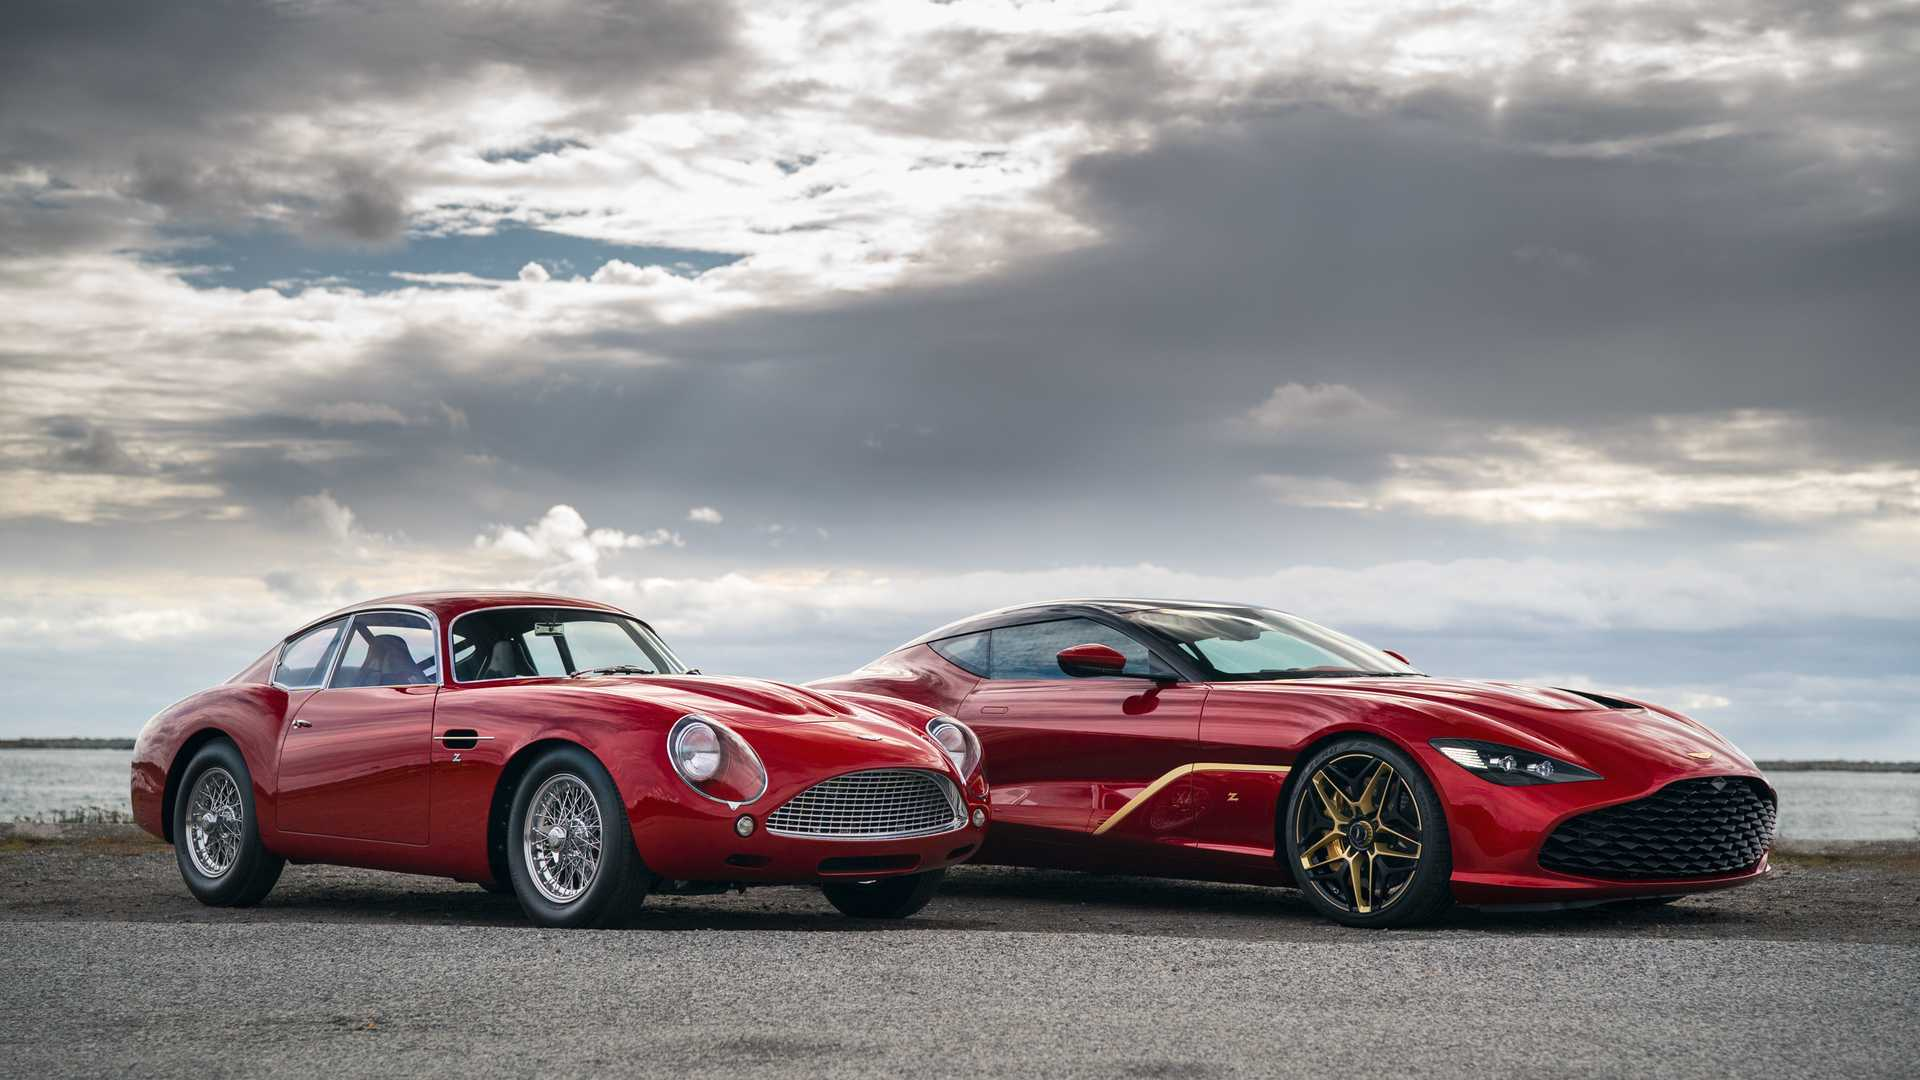 aston-martin-dbs-gt-zagato-and-db4-gt-zagato-continuation-1